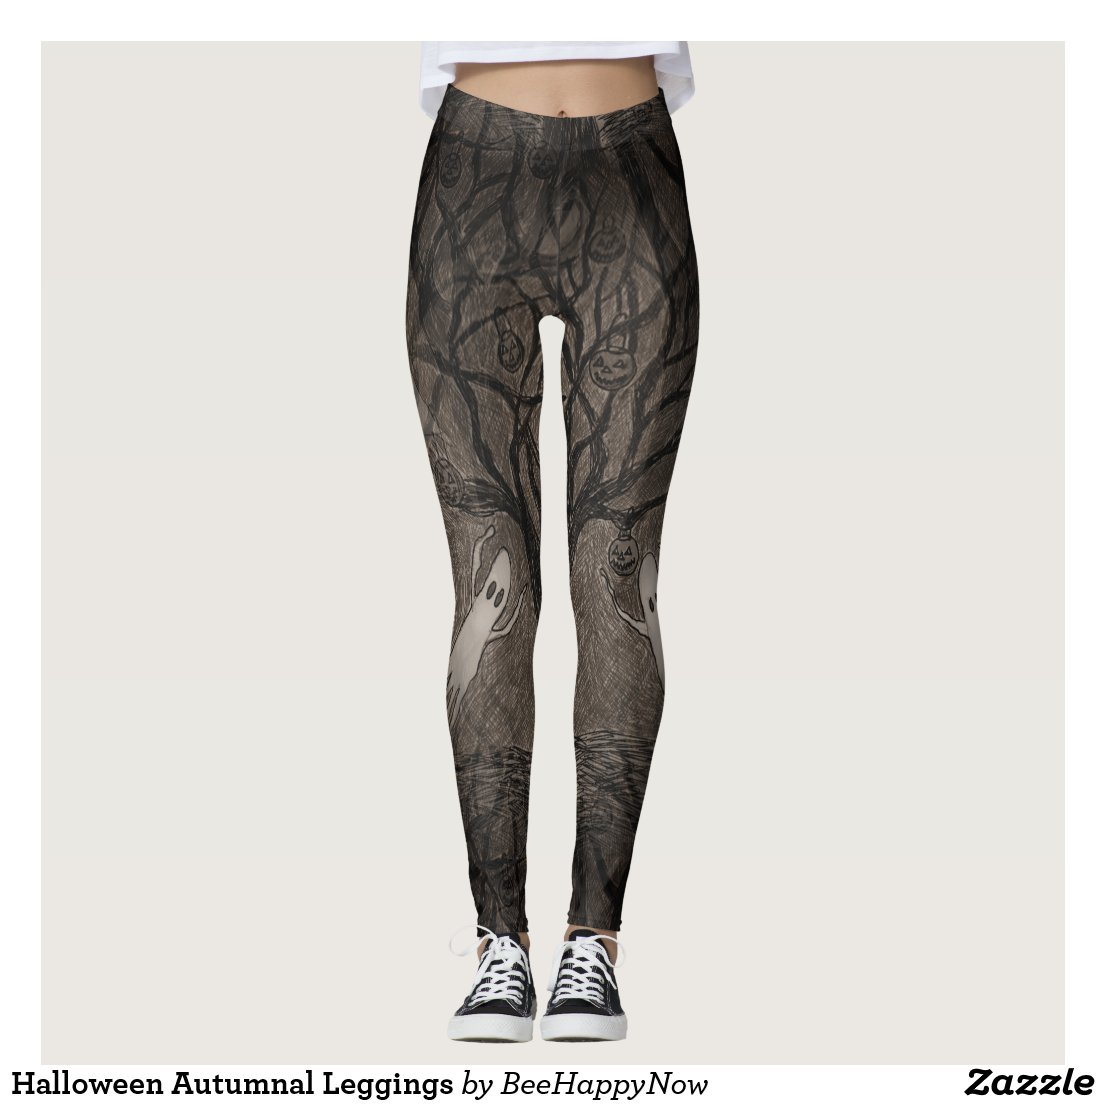 Halloween Autumnal Leggings